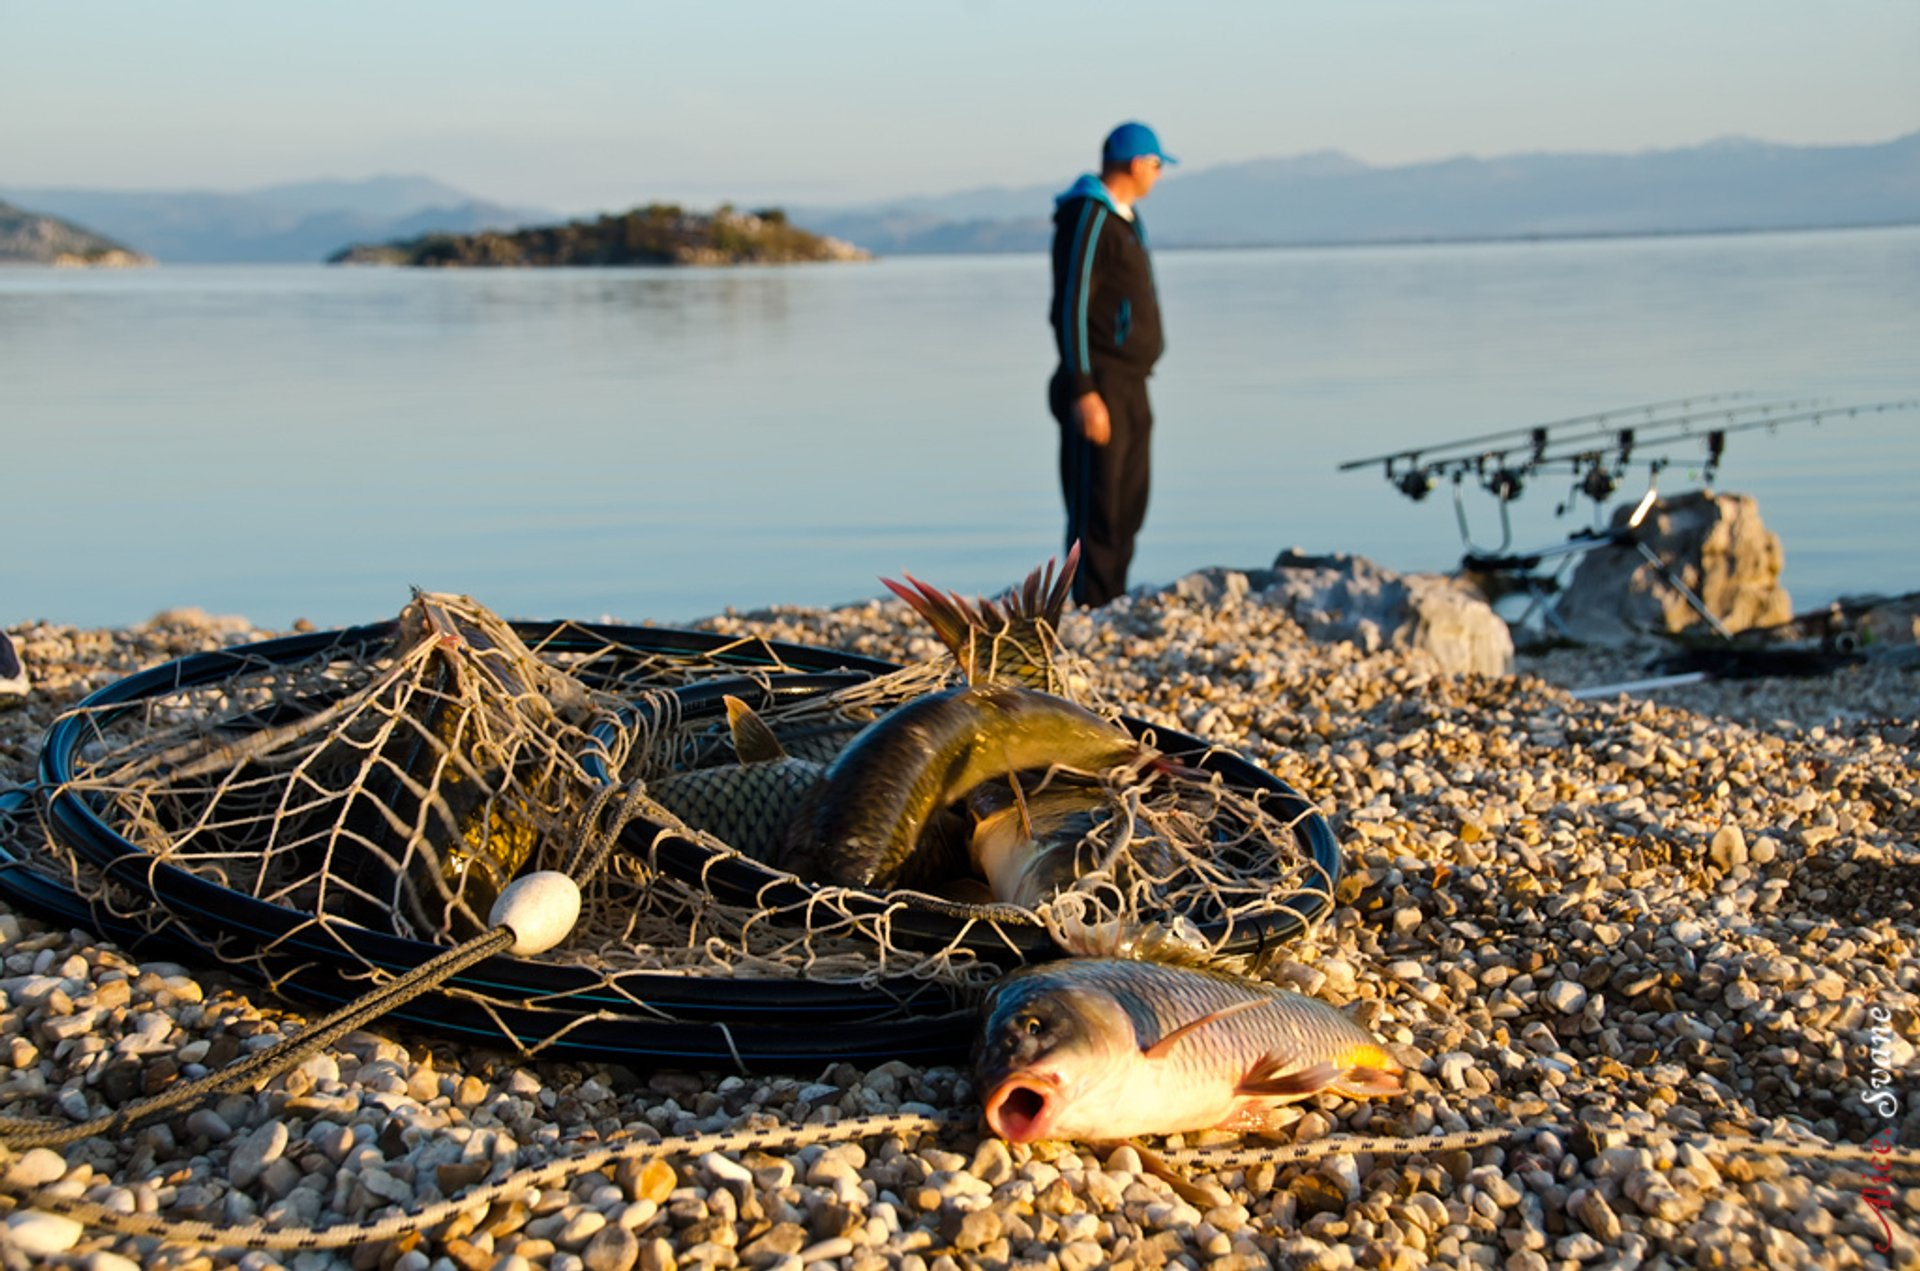 Fishing on Skadar Lake (Skadarsko Jezero) 2020